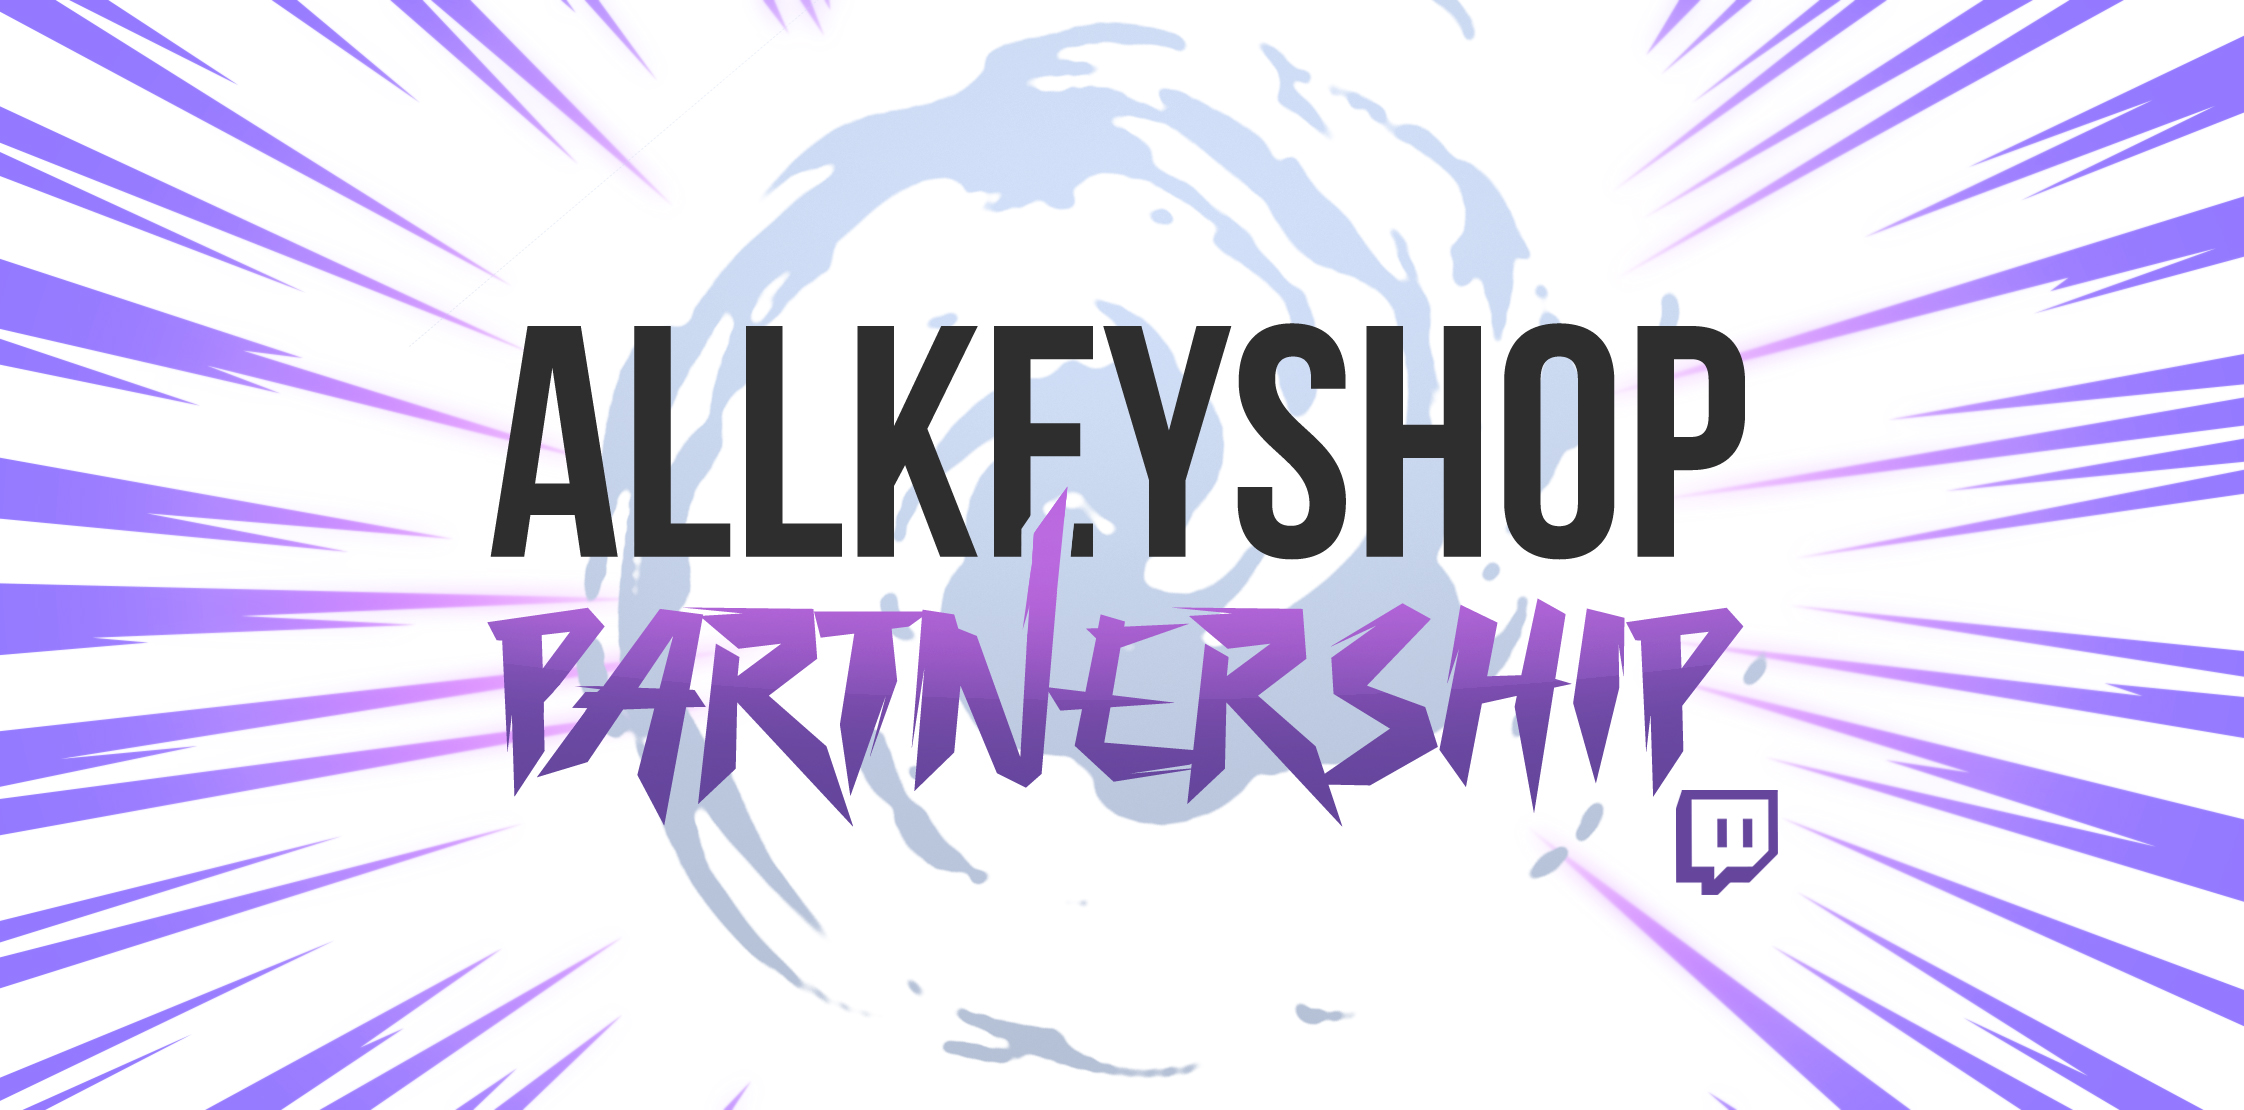 Allkeyshop Partnership